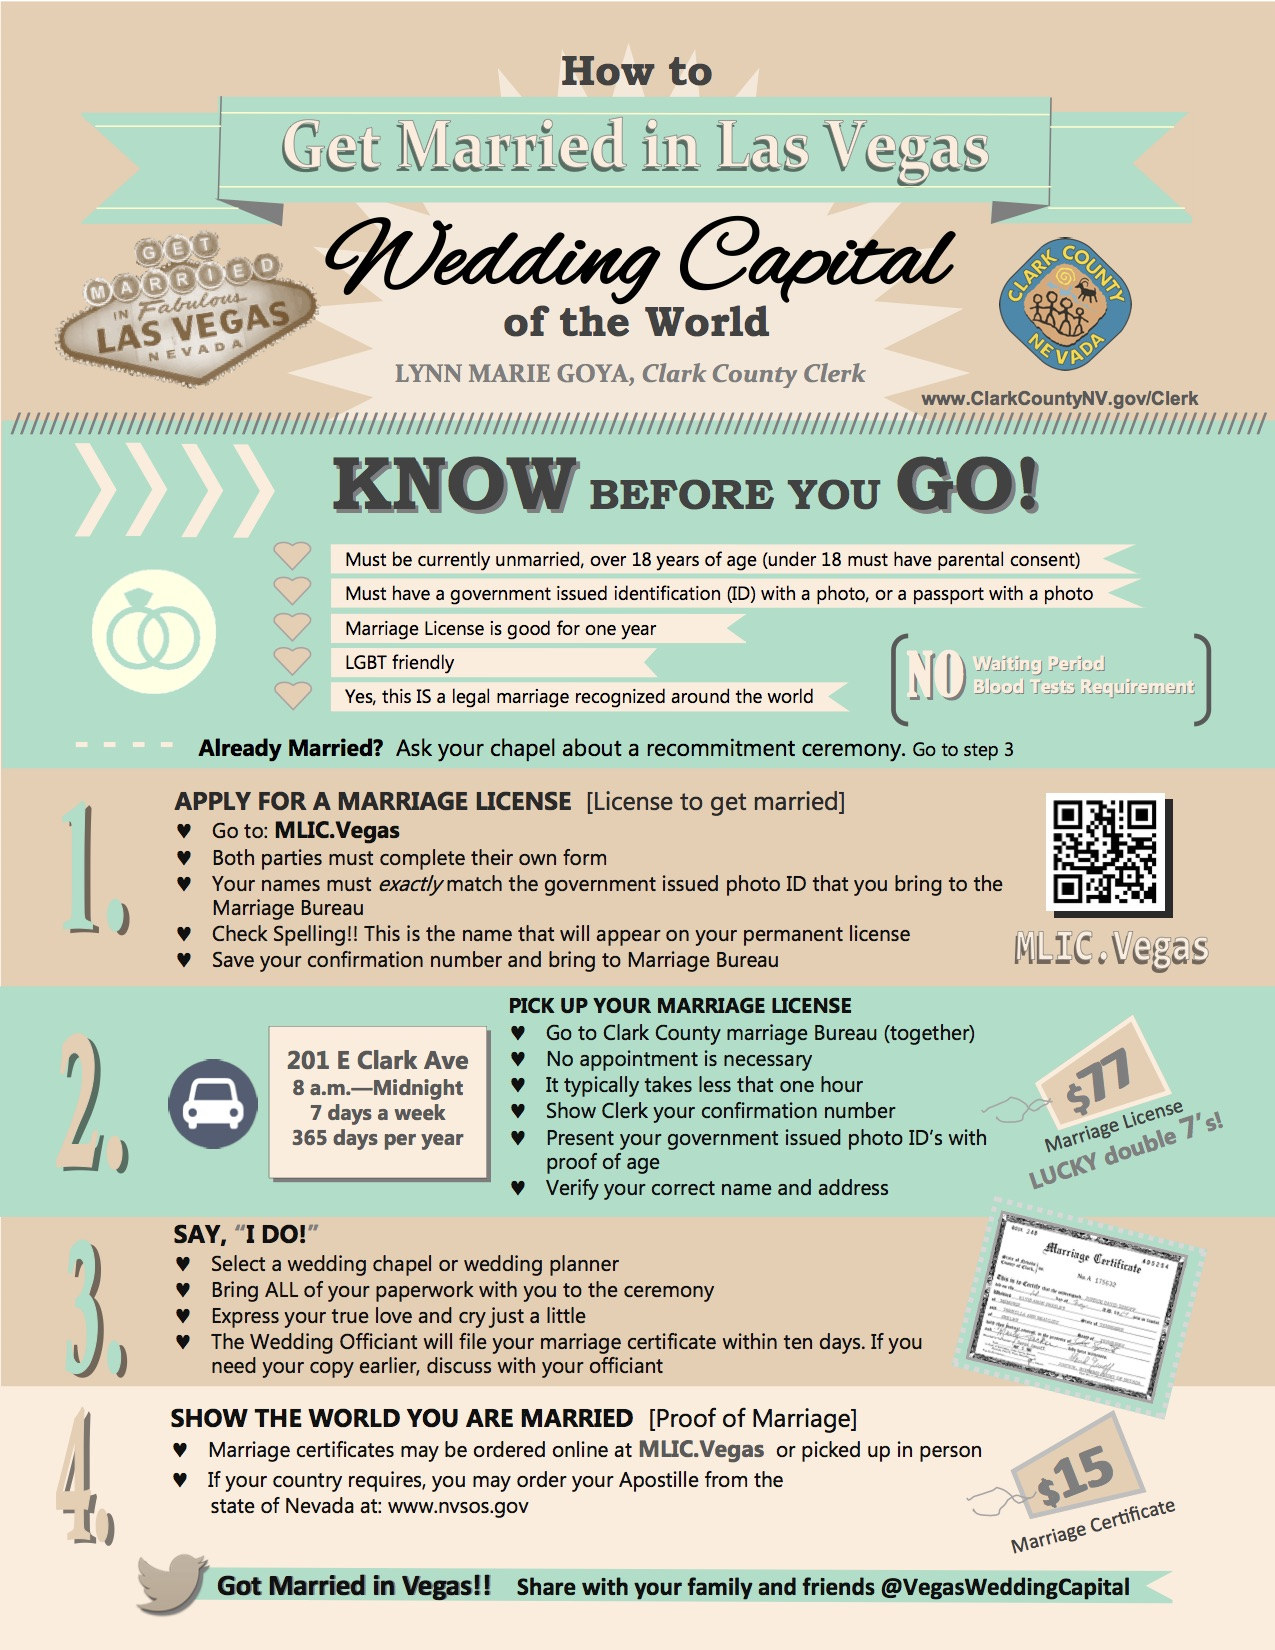 How to get married in las vegas the wedding capital of the world after you pick up your marriage license walk on over to see us at downtown vegas chapel we can do the rest for you let us help you say i do 1betcityfo Gallery